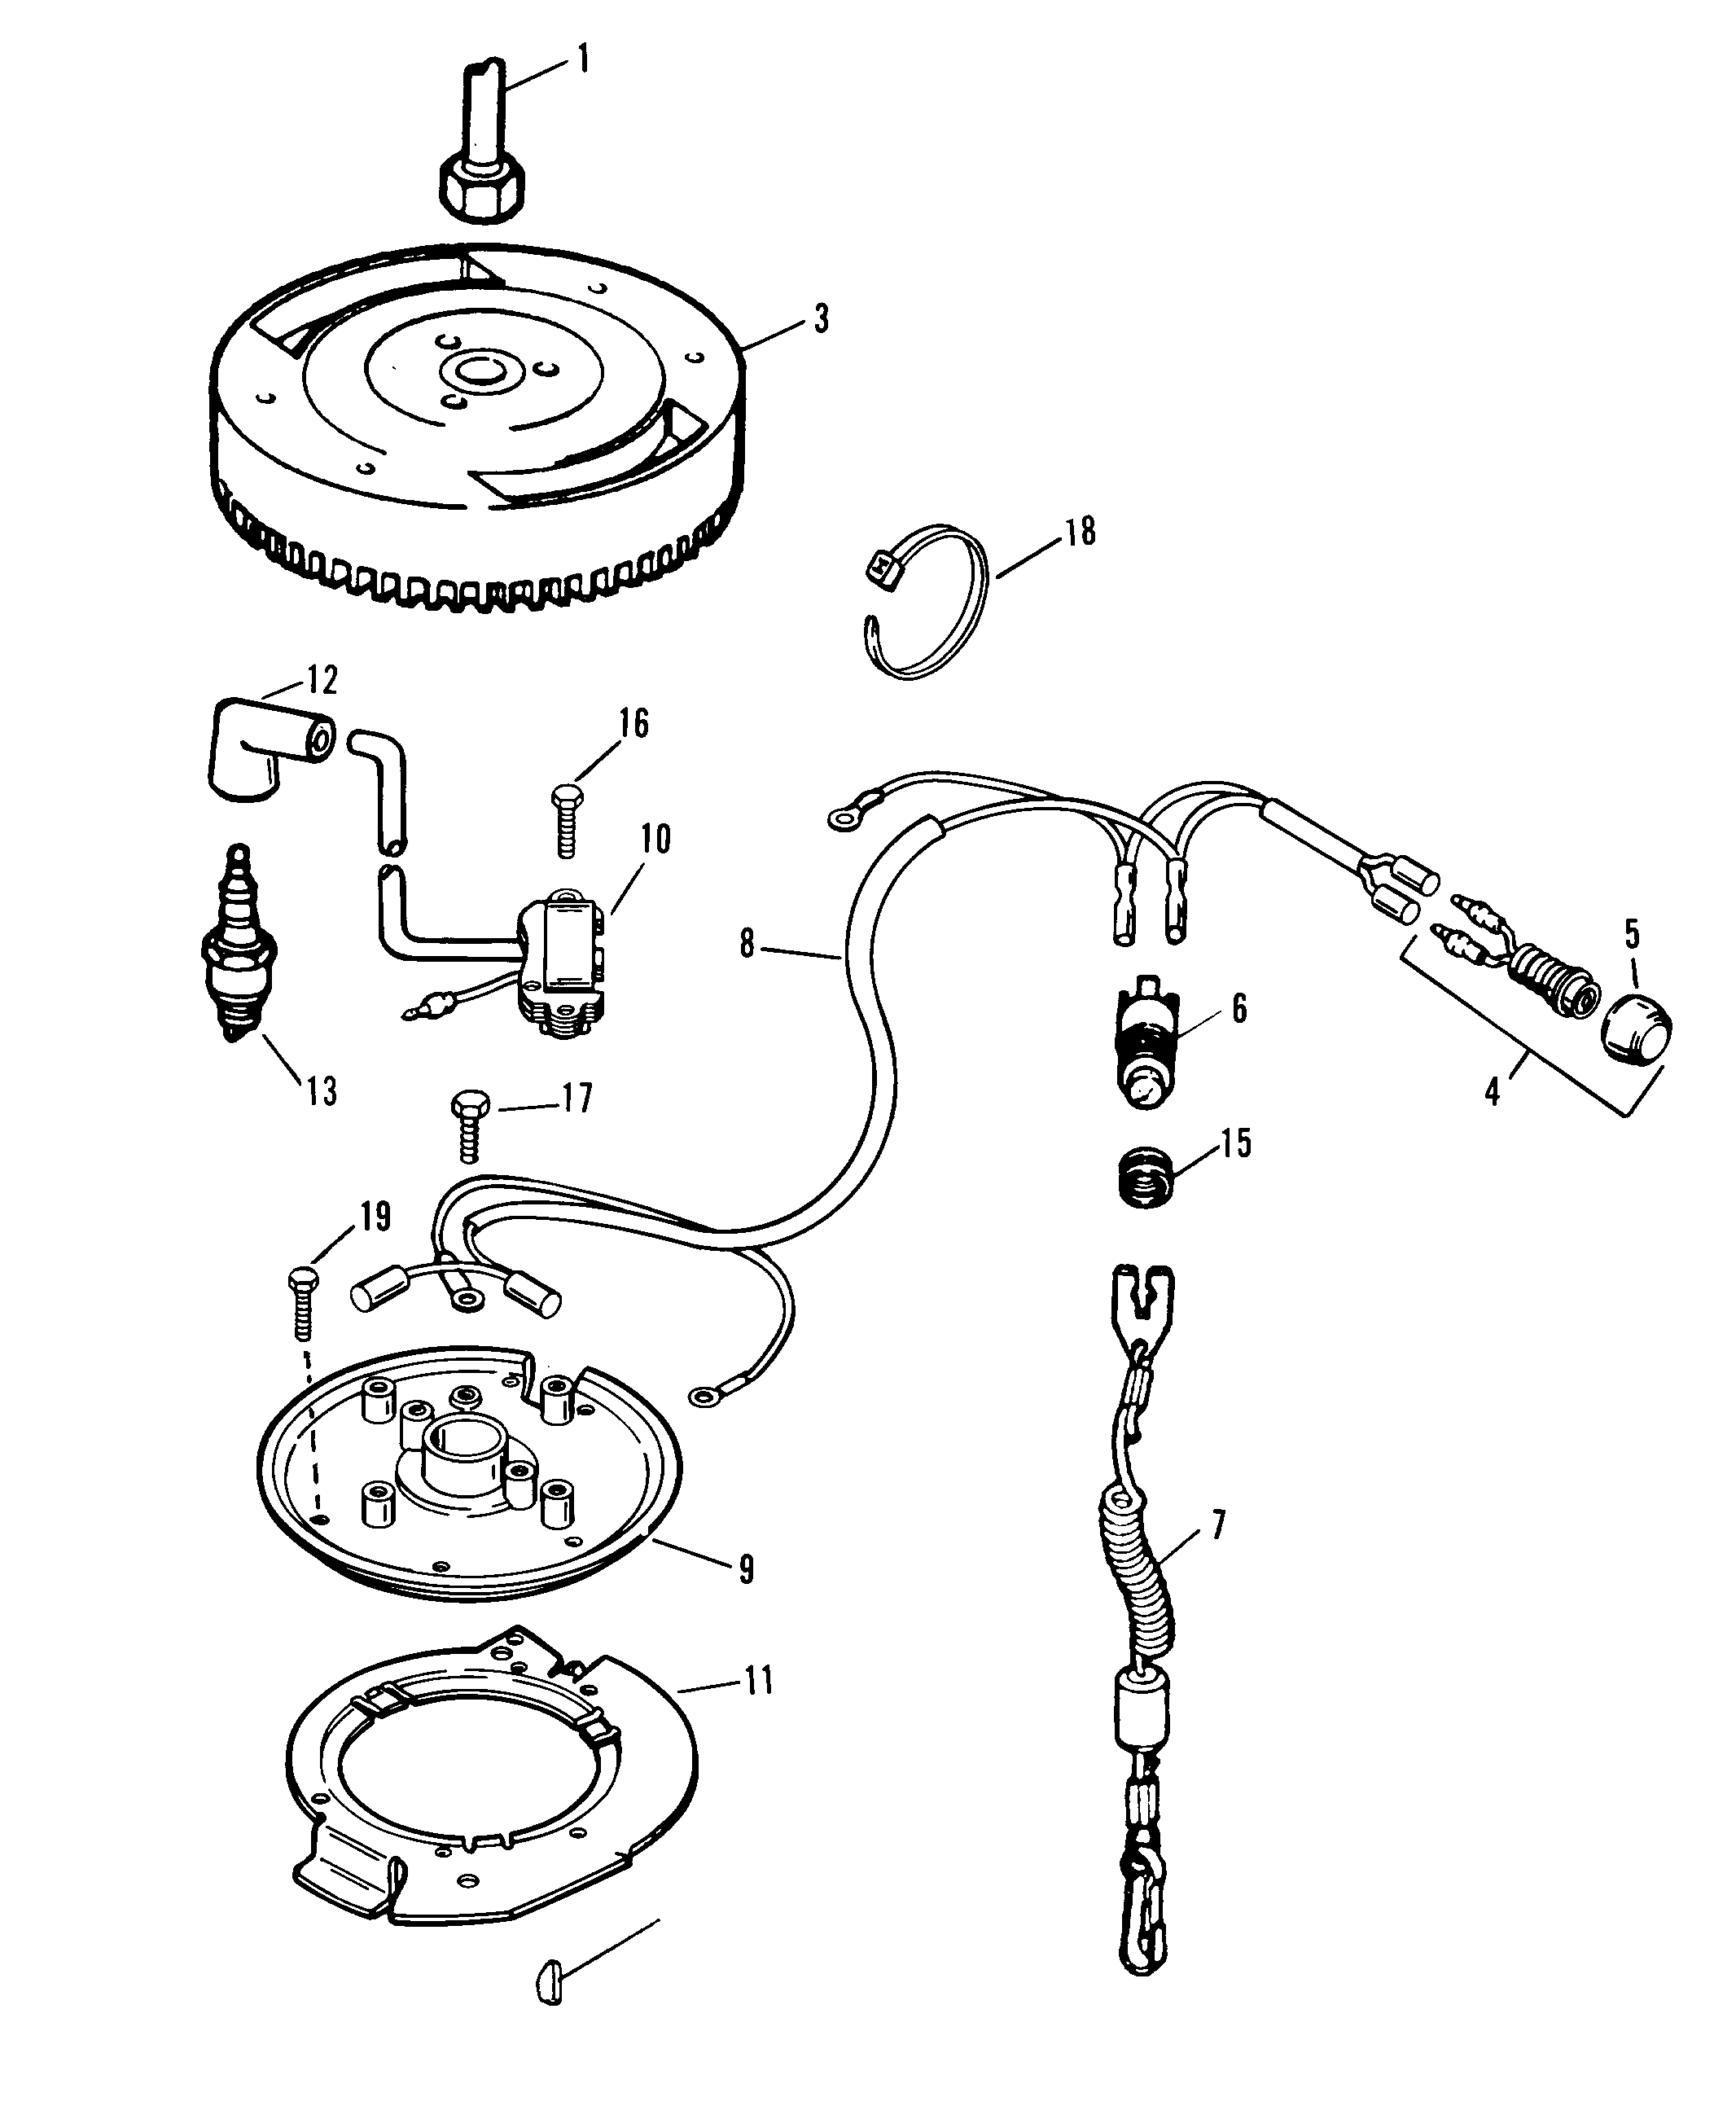 Ignition System For 15 H P Outboard Motor